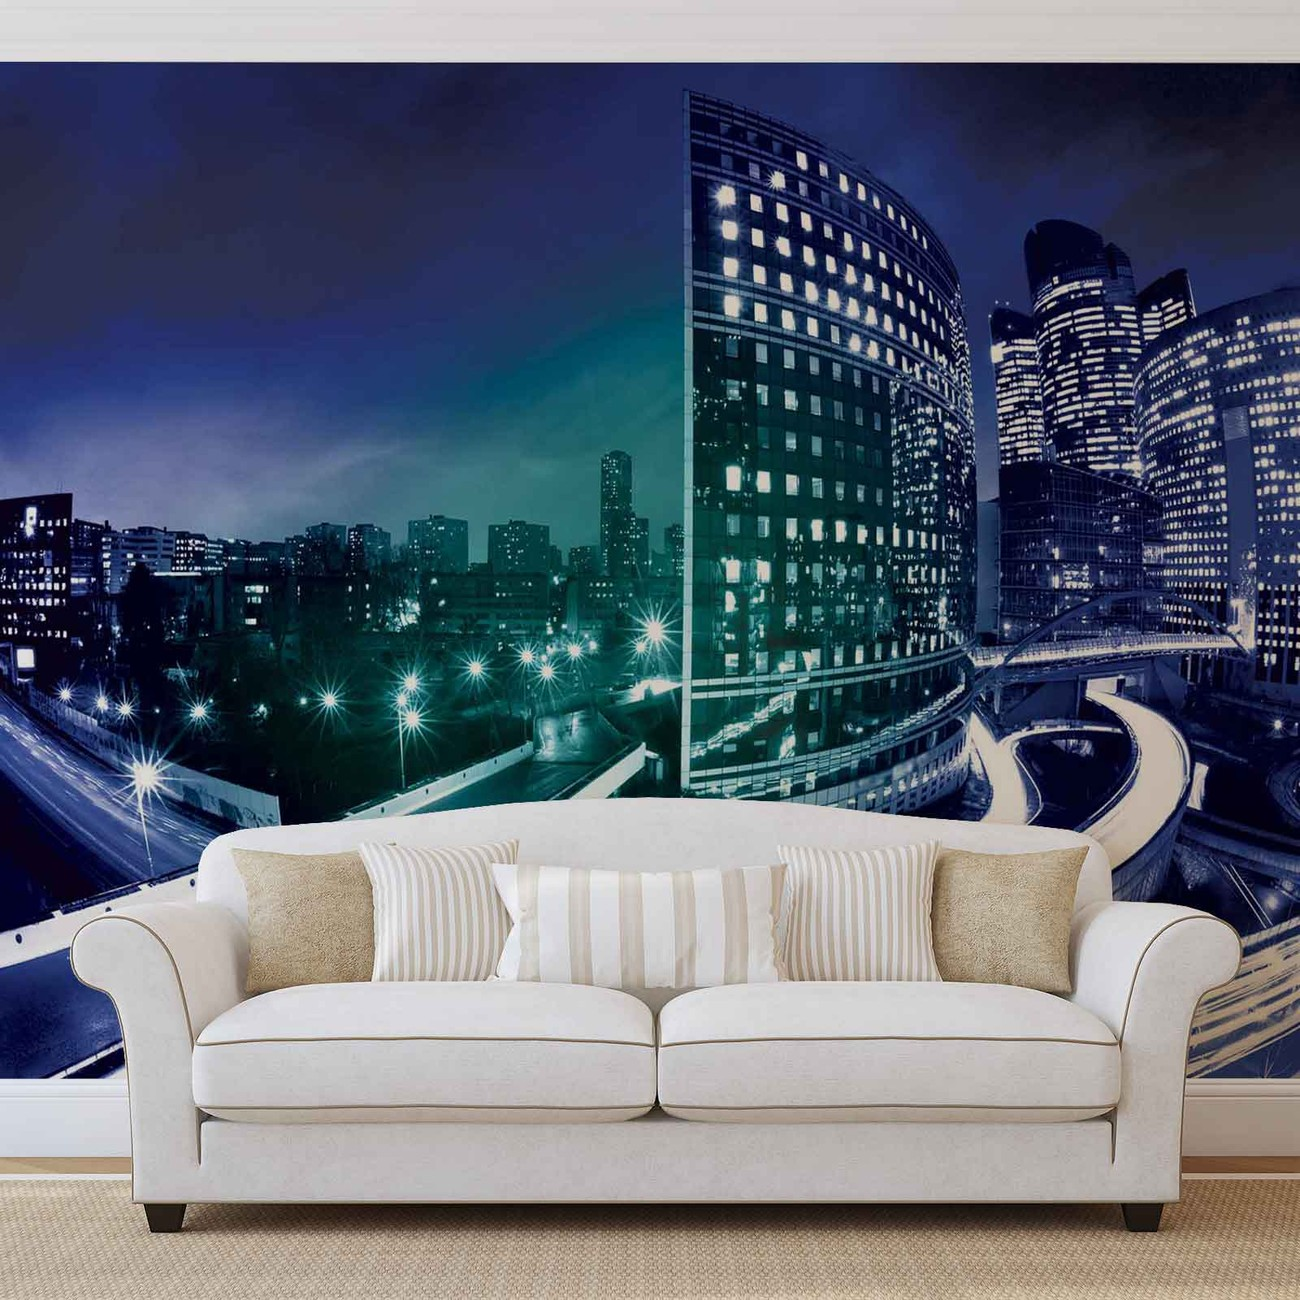 City skyline night wall paper mural buy at europosters for Cityscape murals photo wall mural